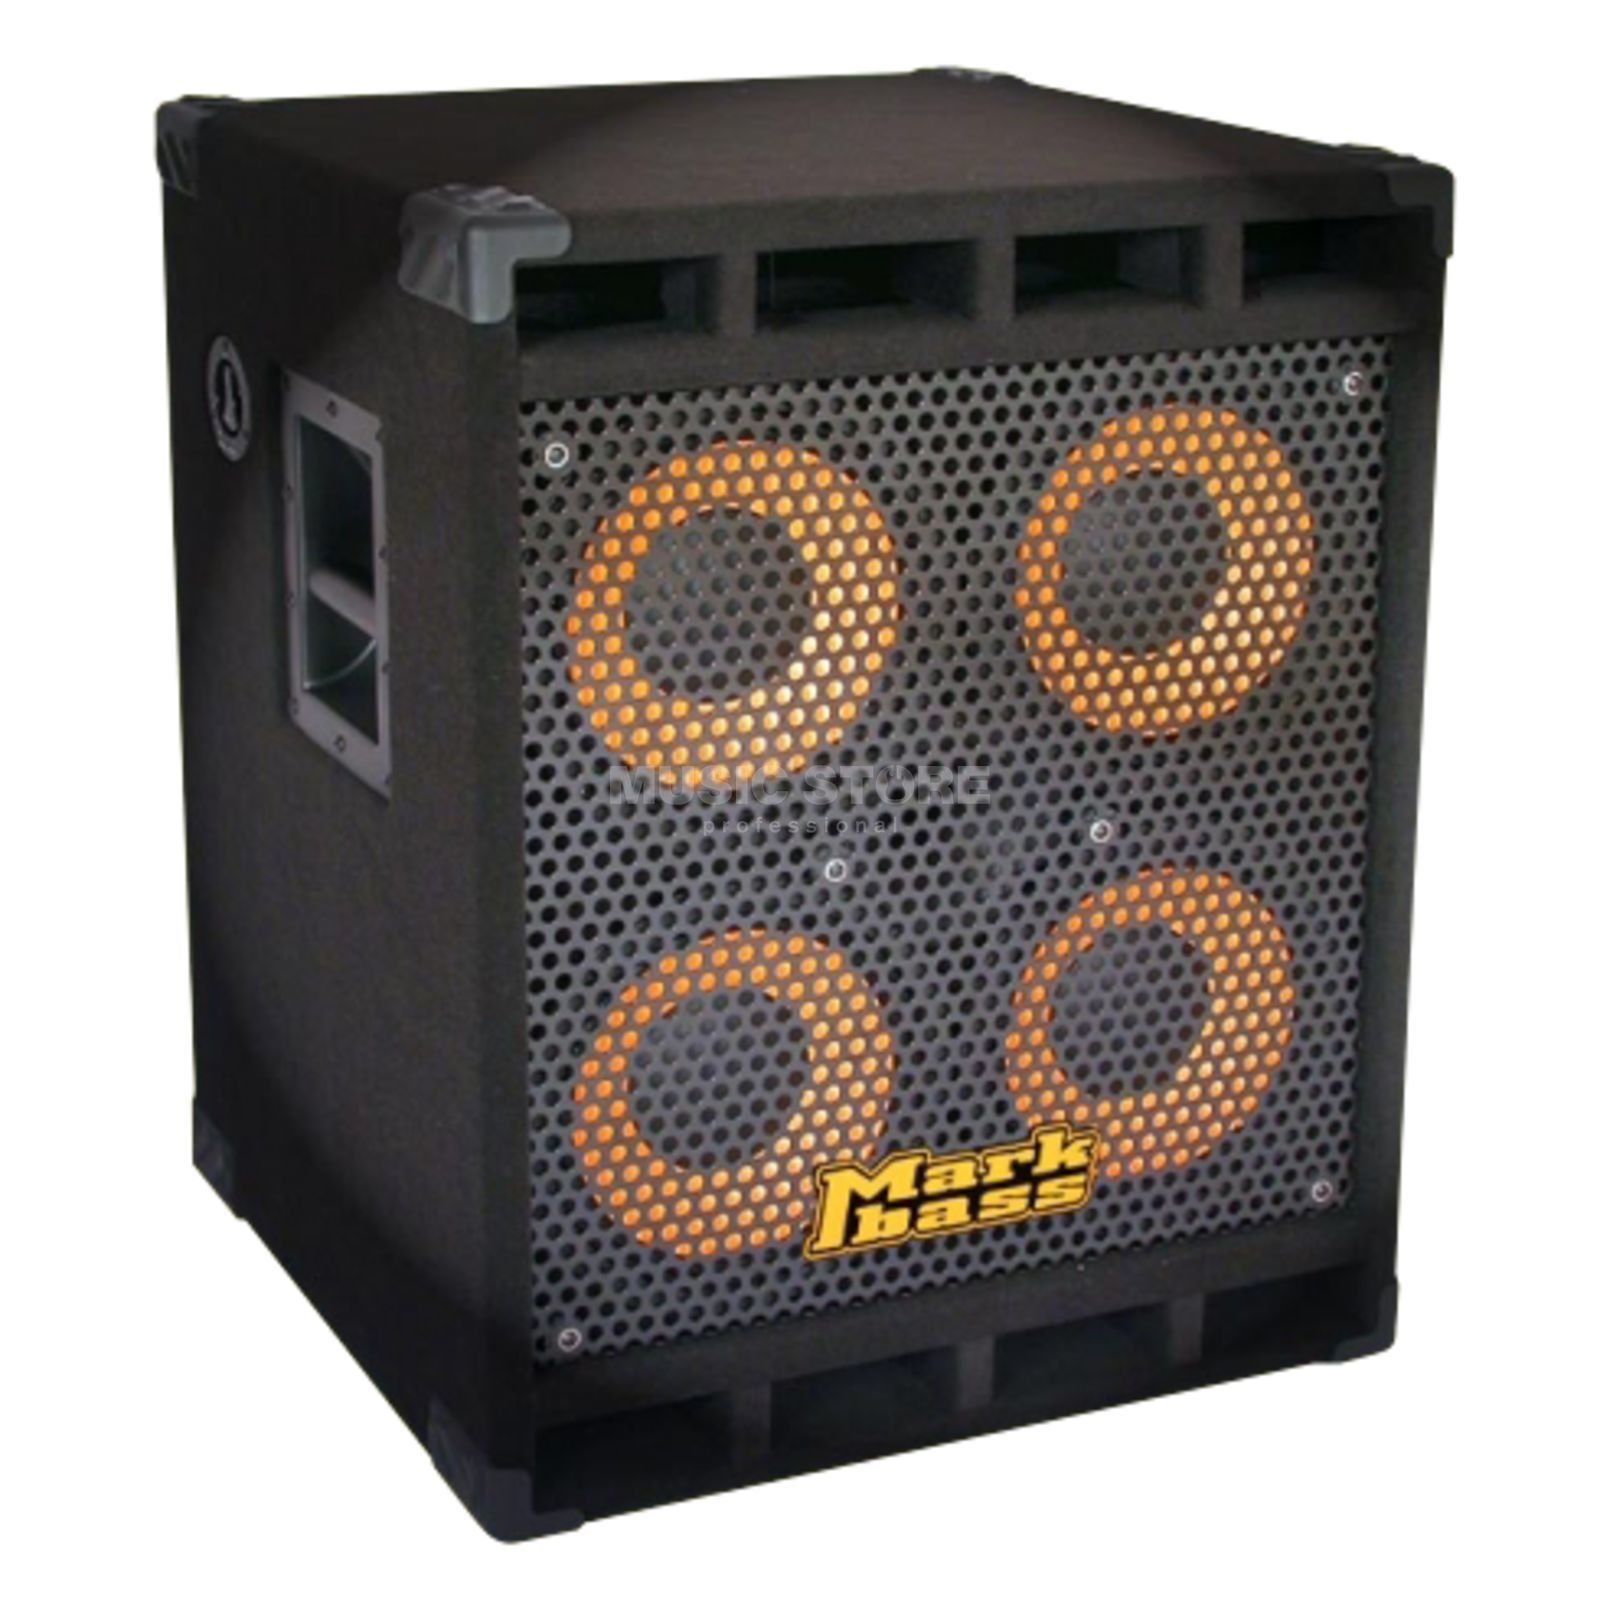 Markbass standaard 104 HF 4 Ohm Cabinet  Productafbeelding